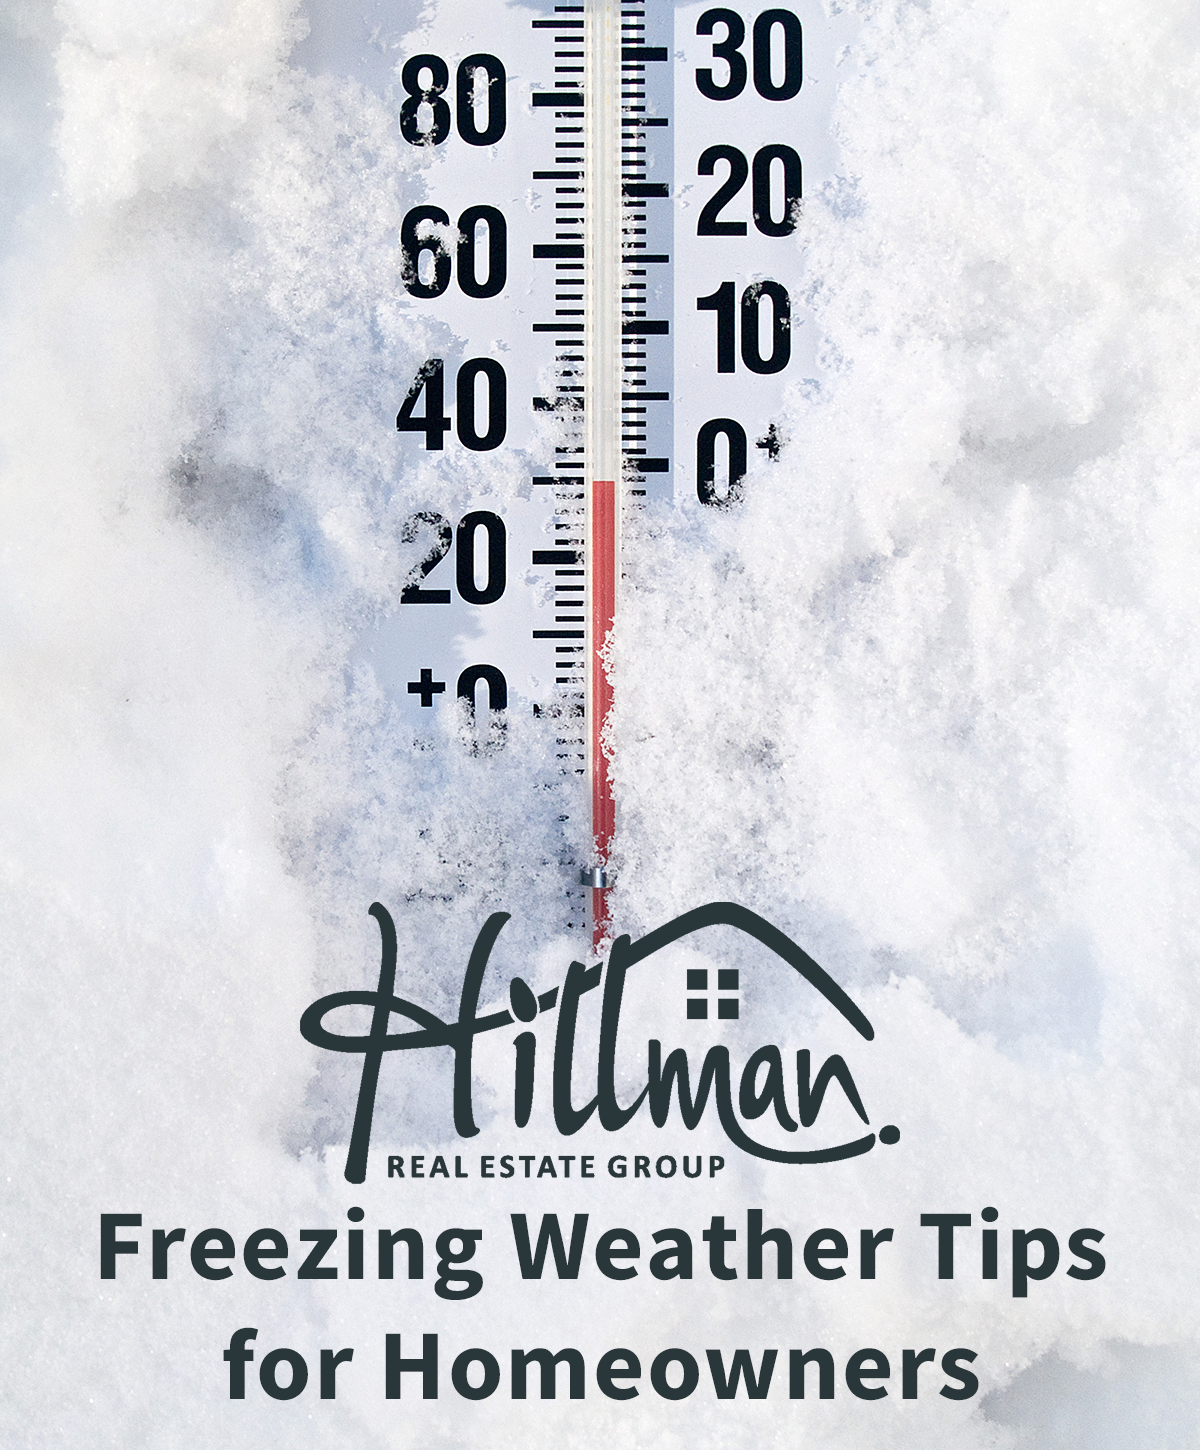 Hillman Real Estate Group shares winter weather tips for homeowners